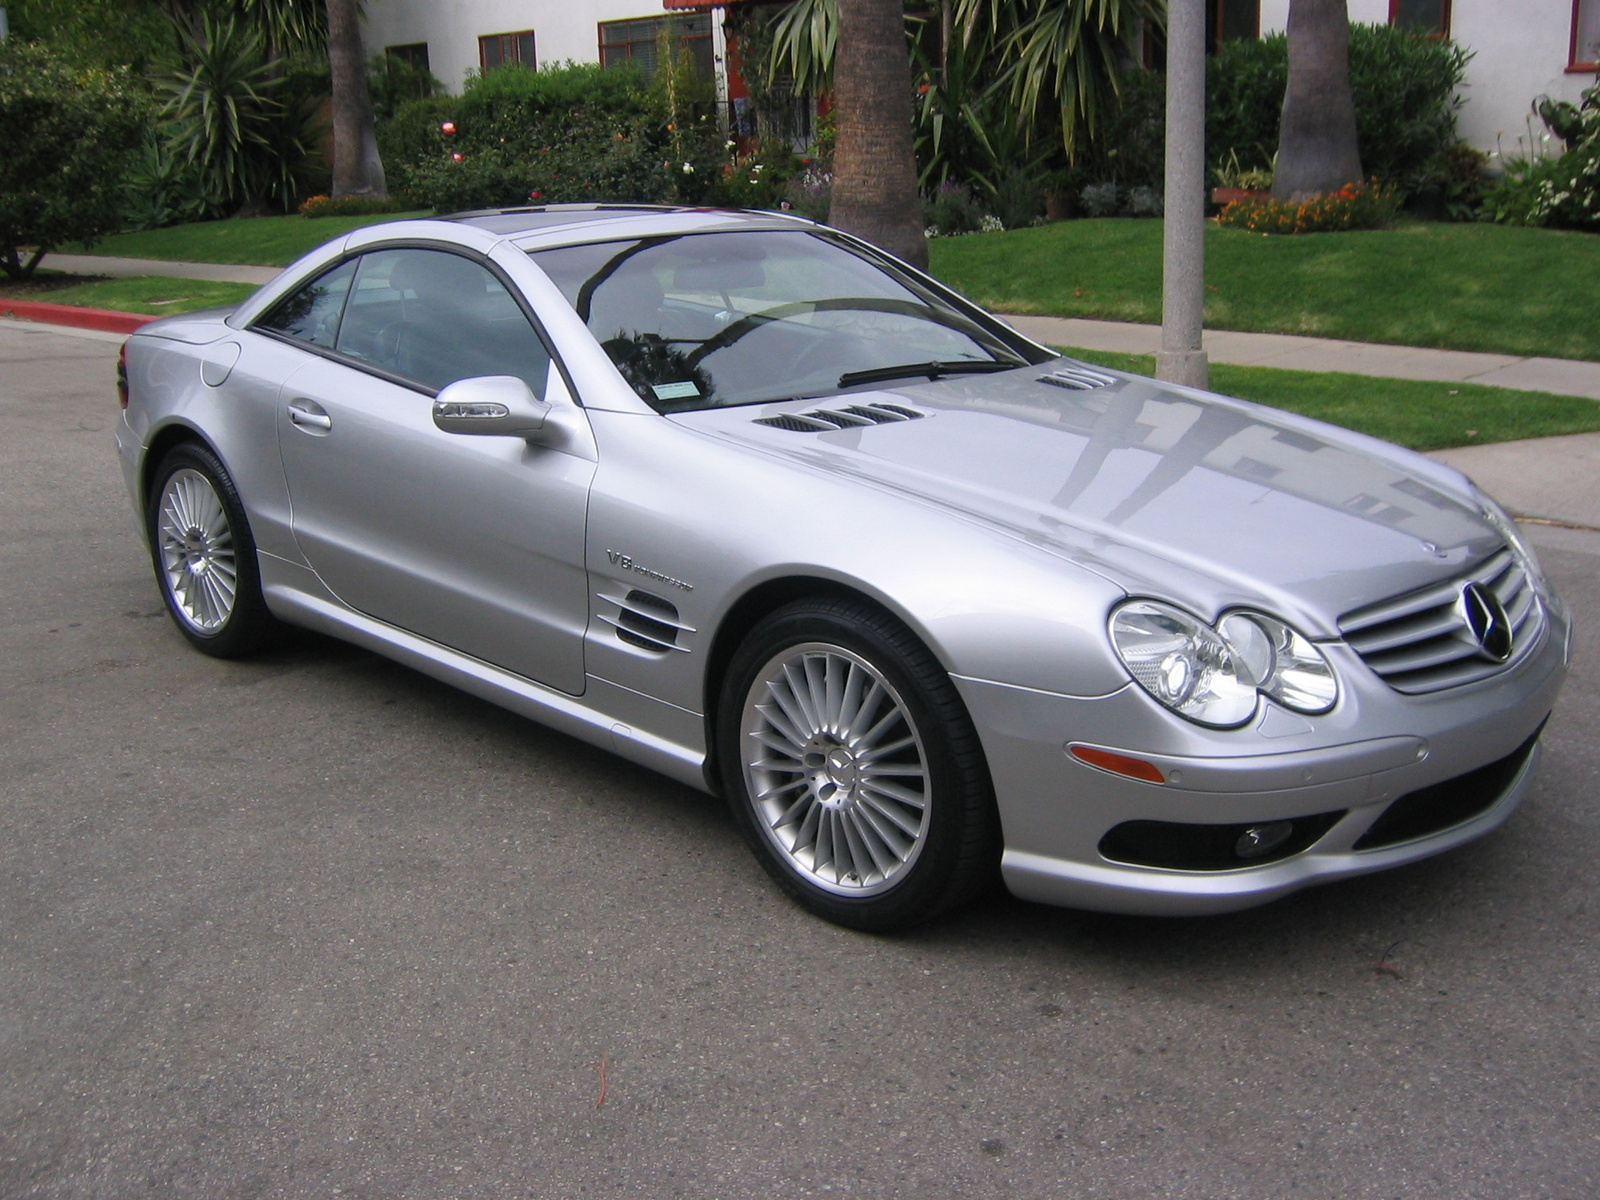 2003 Mercedes-Benz SL55 AMG 2 Dr Supercharged Convertible picture